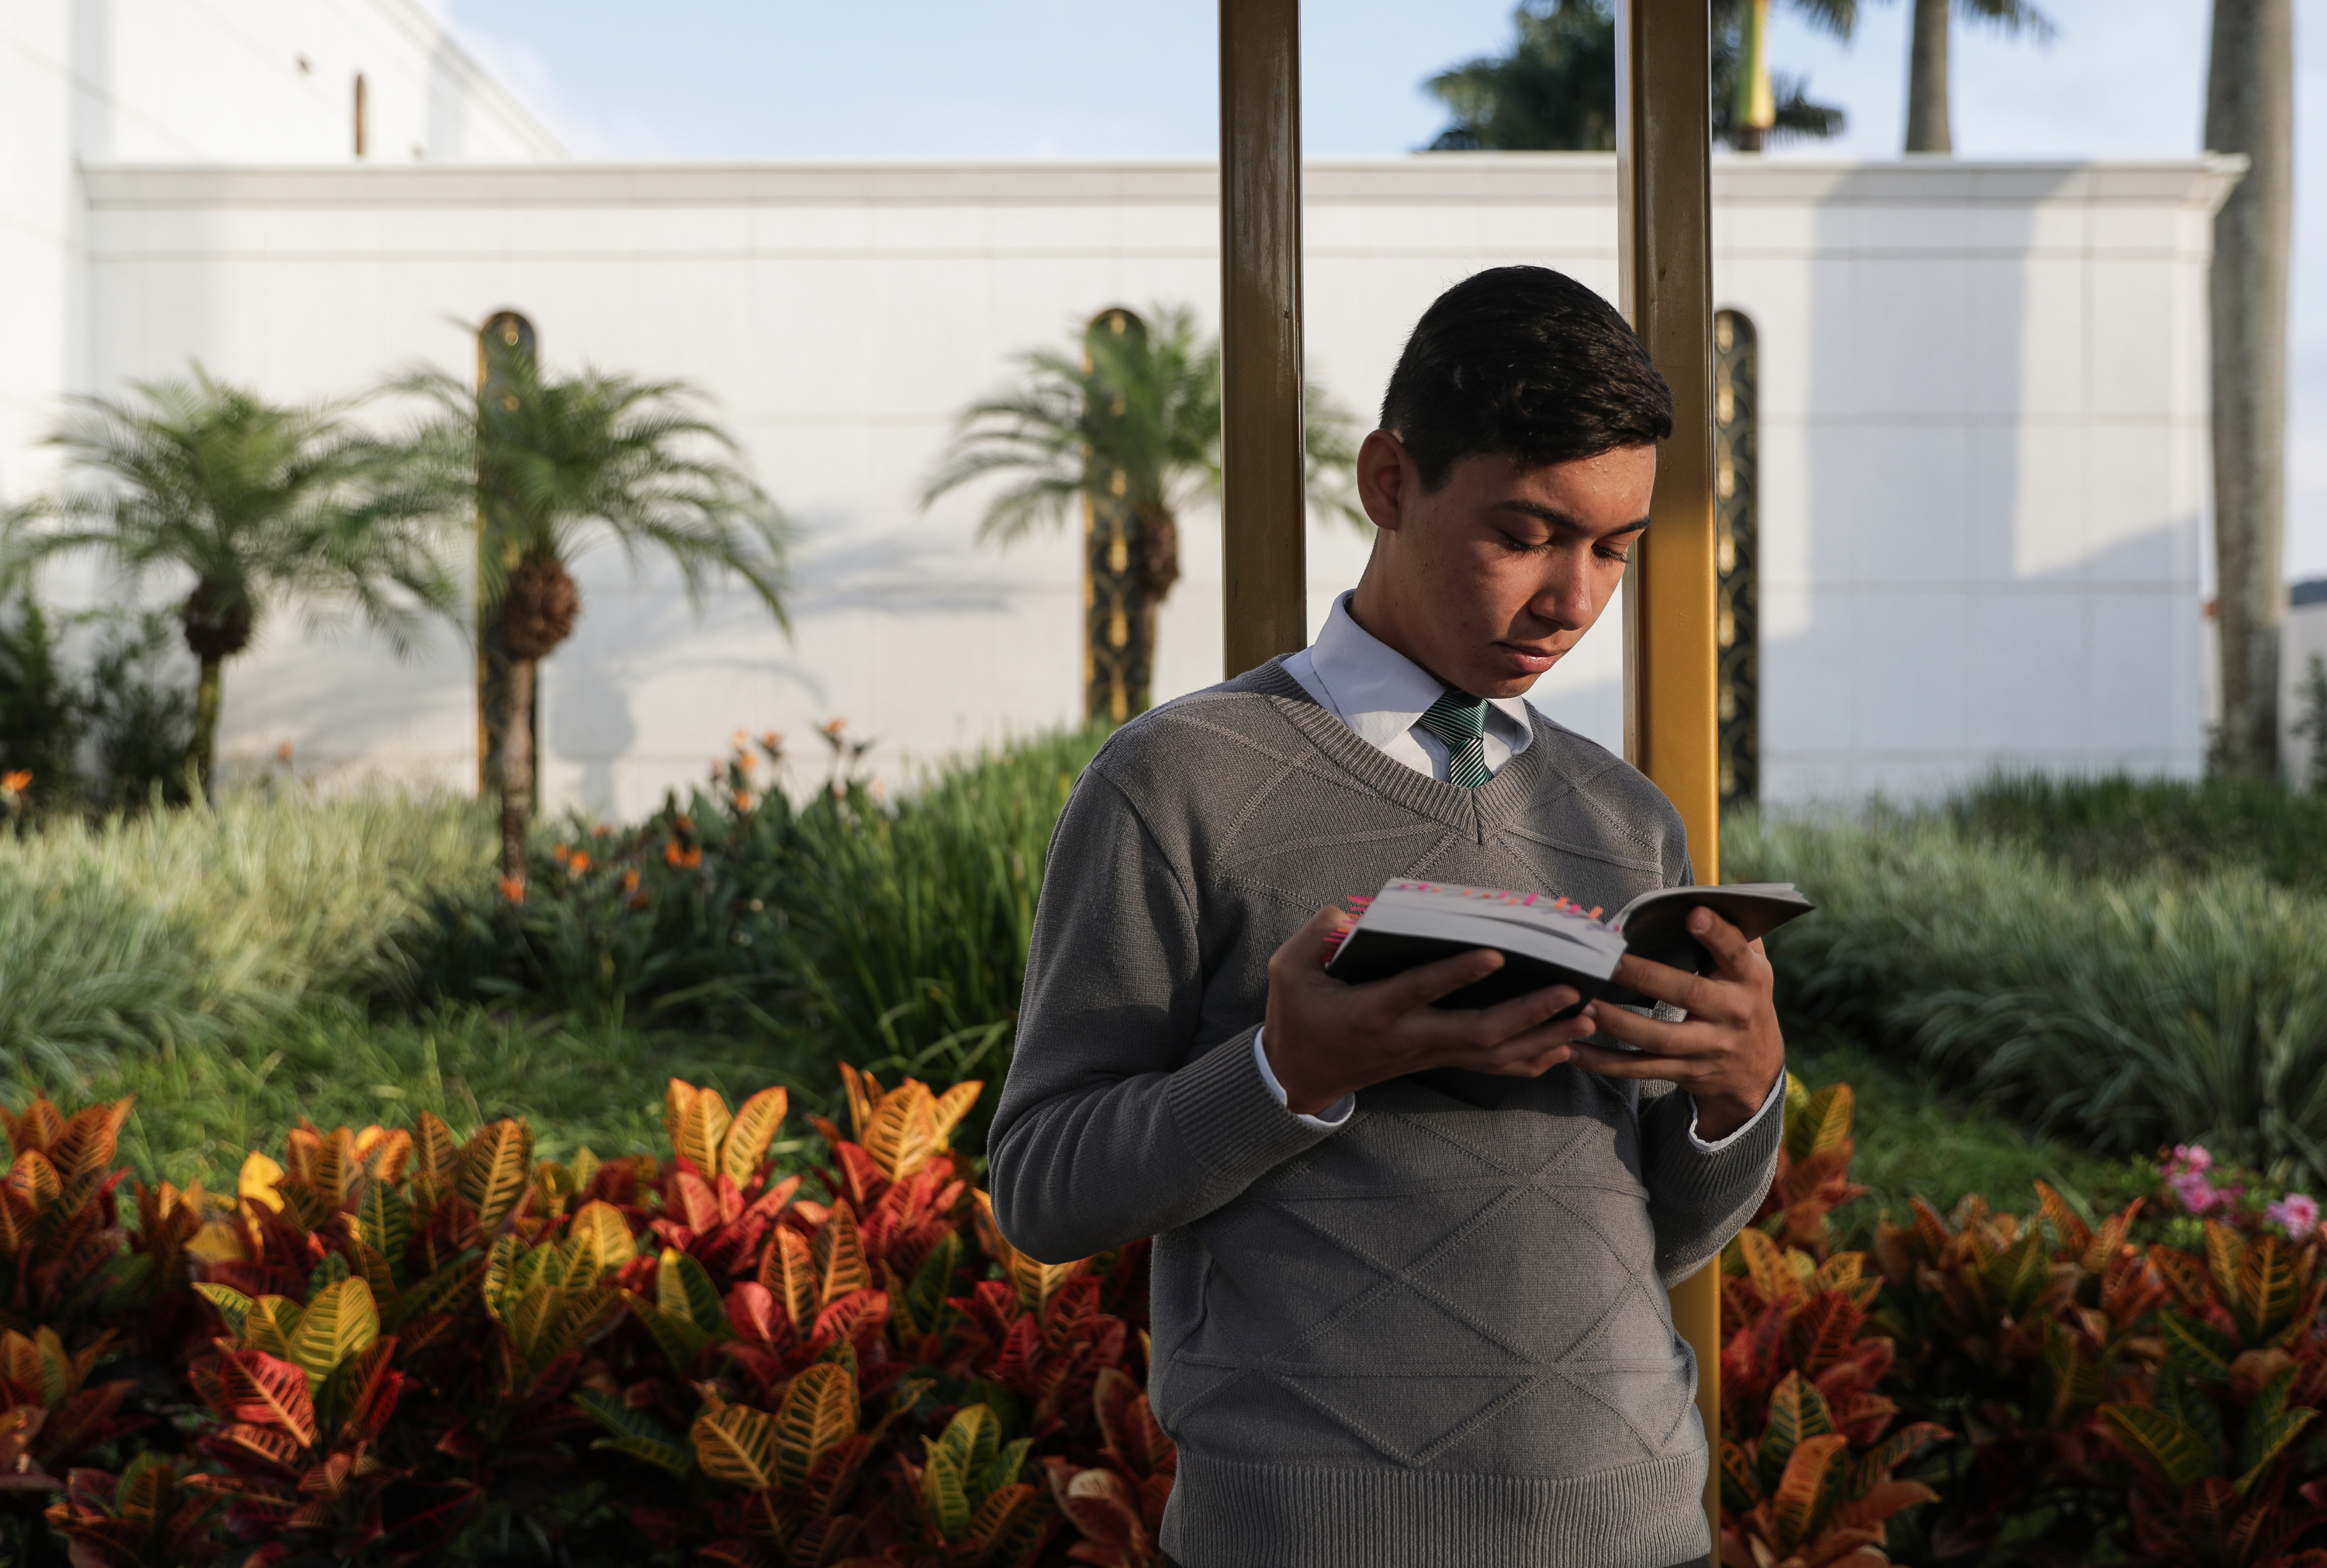 Marcos Silva, 18, reads a copy of The Book of Mormon outside the LDS Church's São Paulo Temple before going to work for the day in the church's area offices in São Paulo, Brazil on Thursday, May 24, 2018.